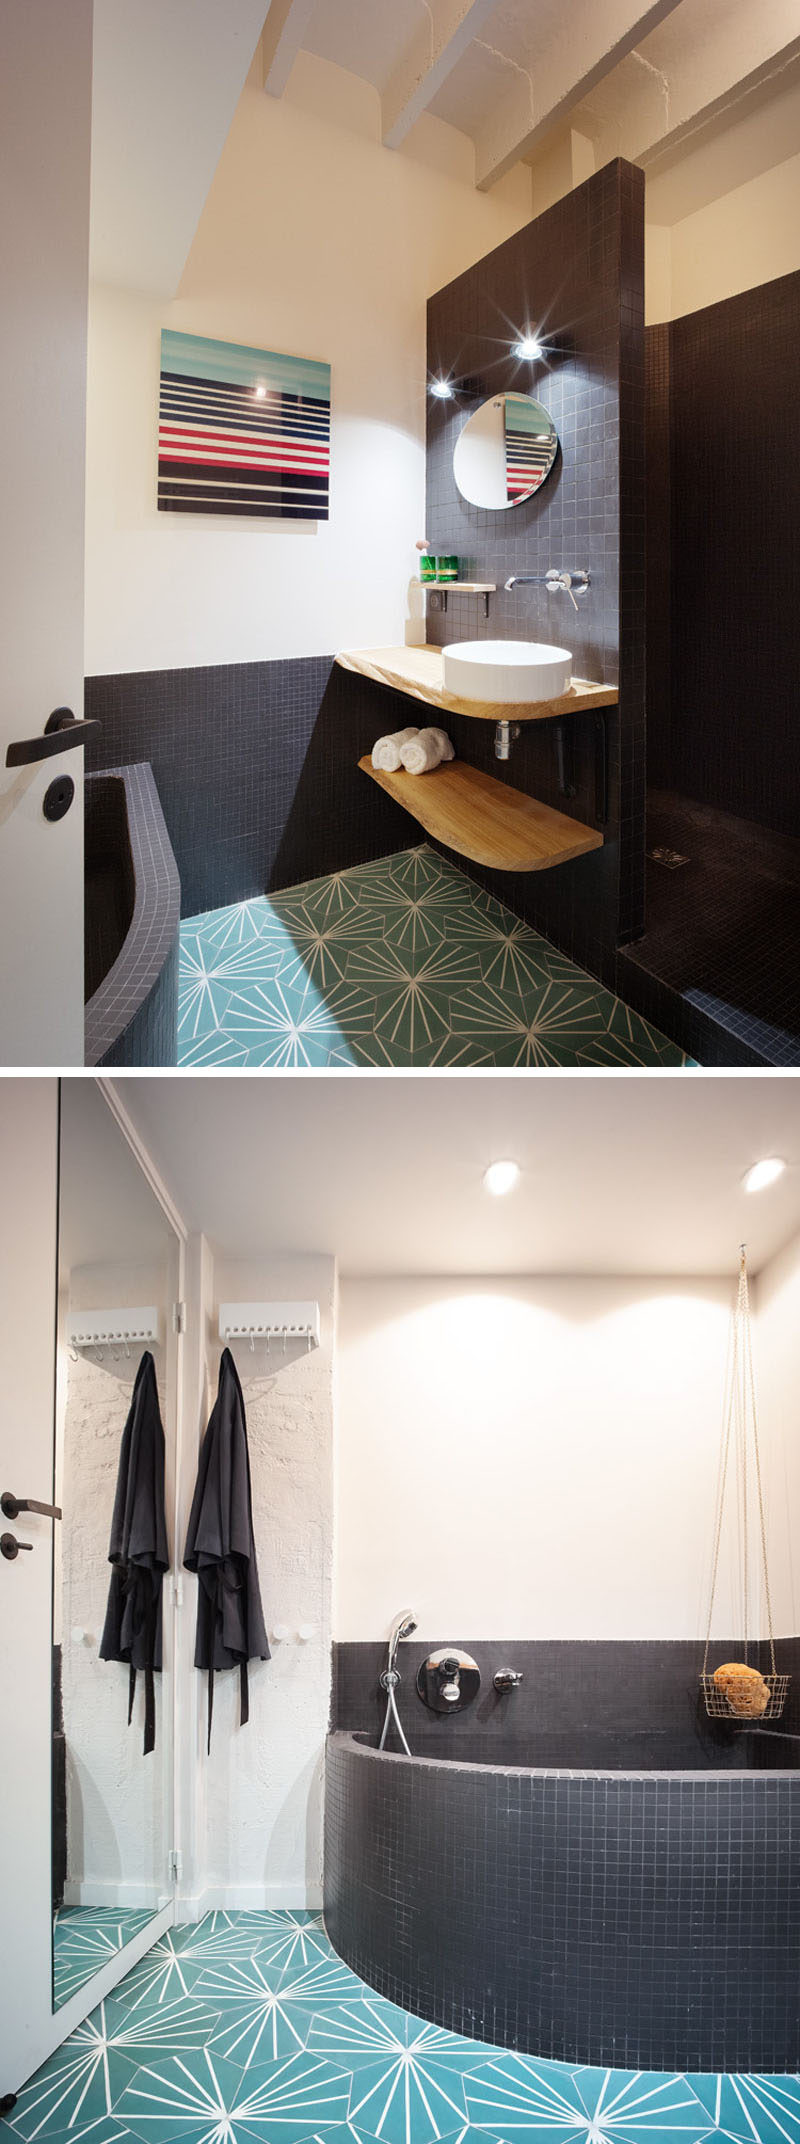 In this modern bathroom, black tiles and patterned colorful floor tiles have been used to break up the otherwise white room. #ModernBathroom